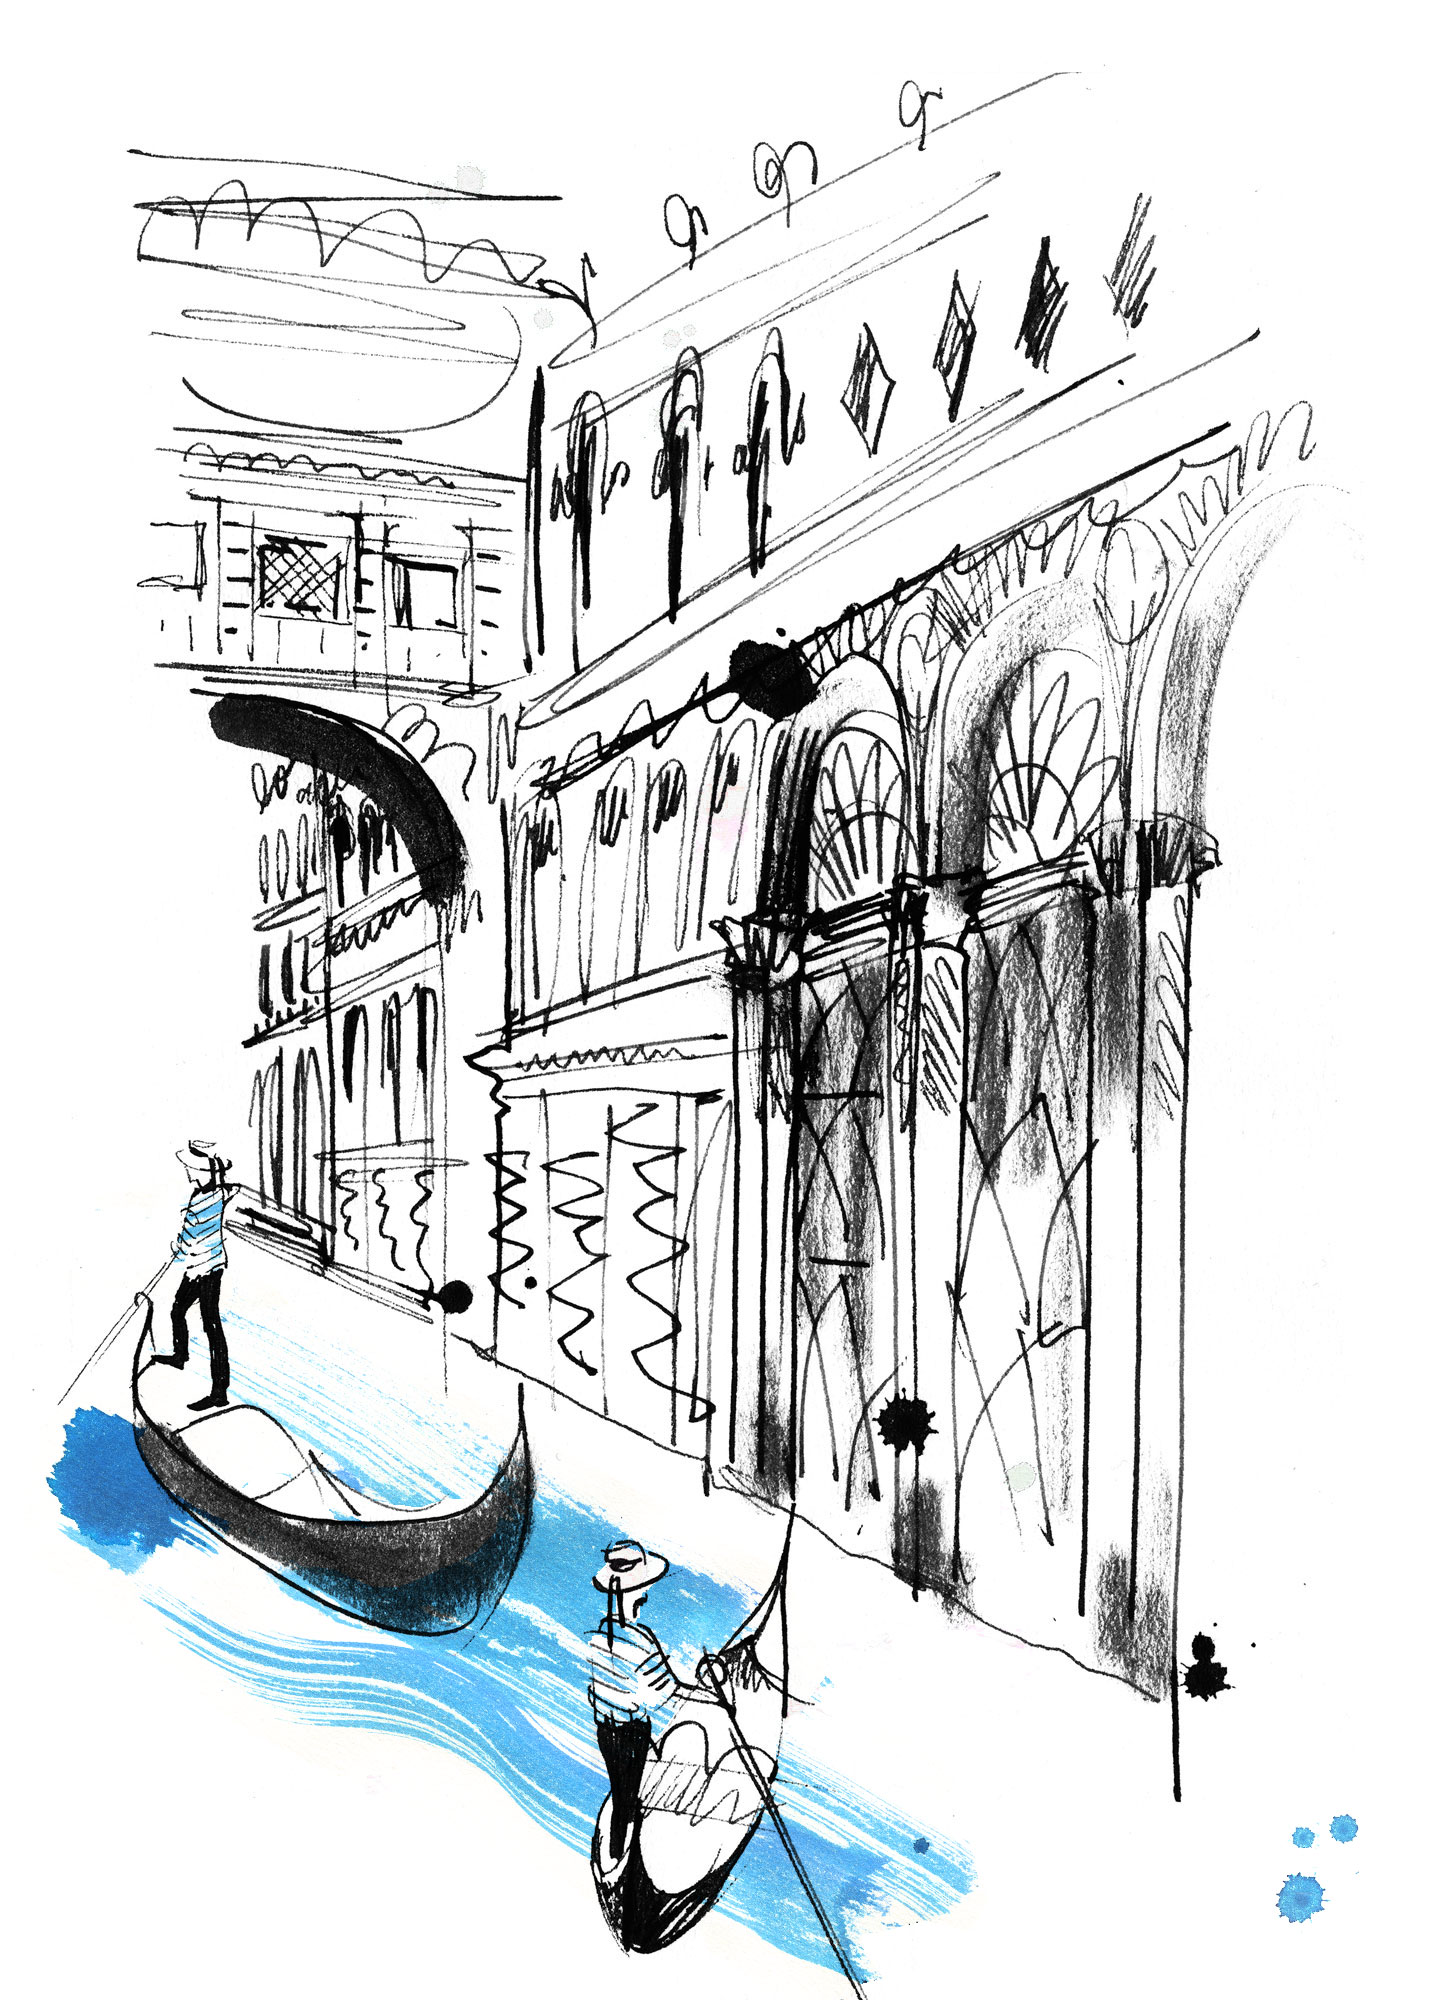 Lovisa-Burfitt-illustration-Venice